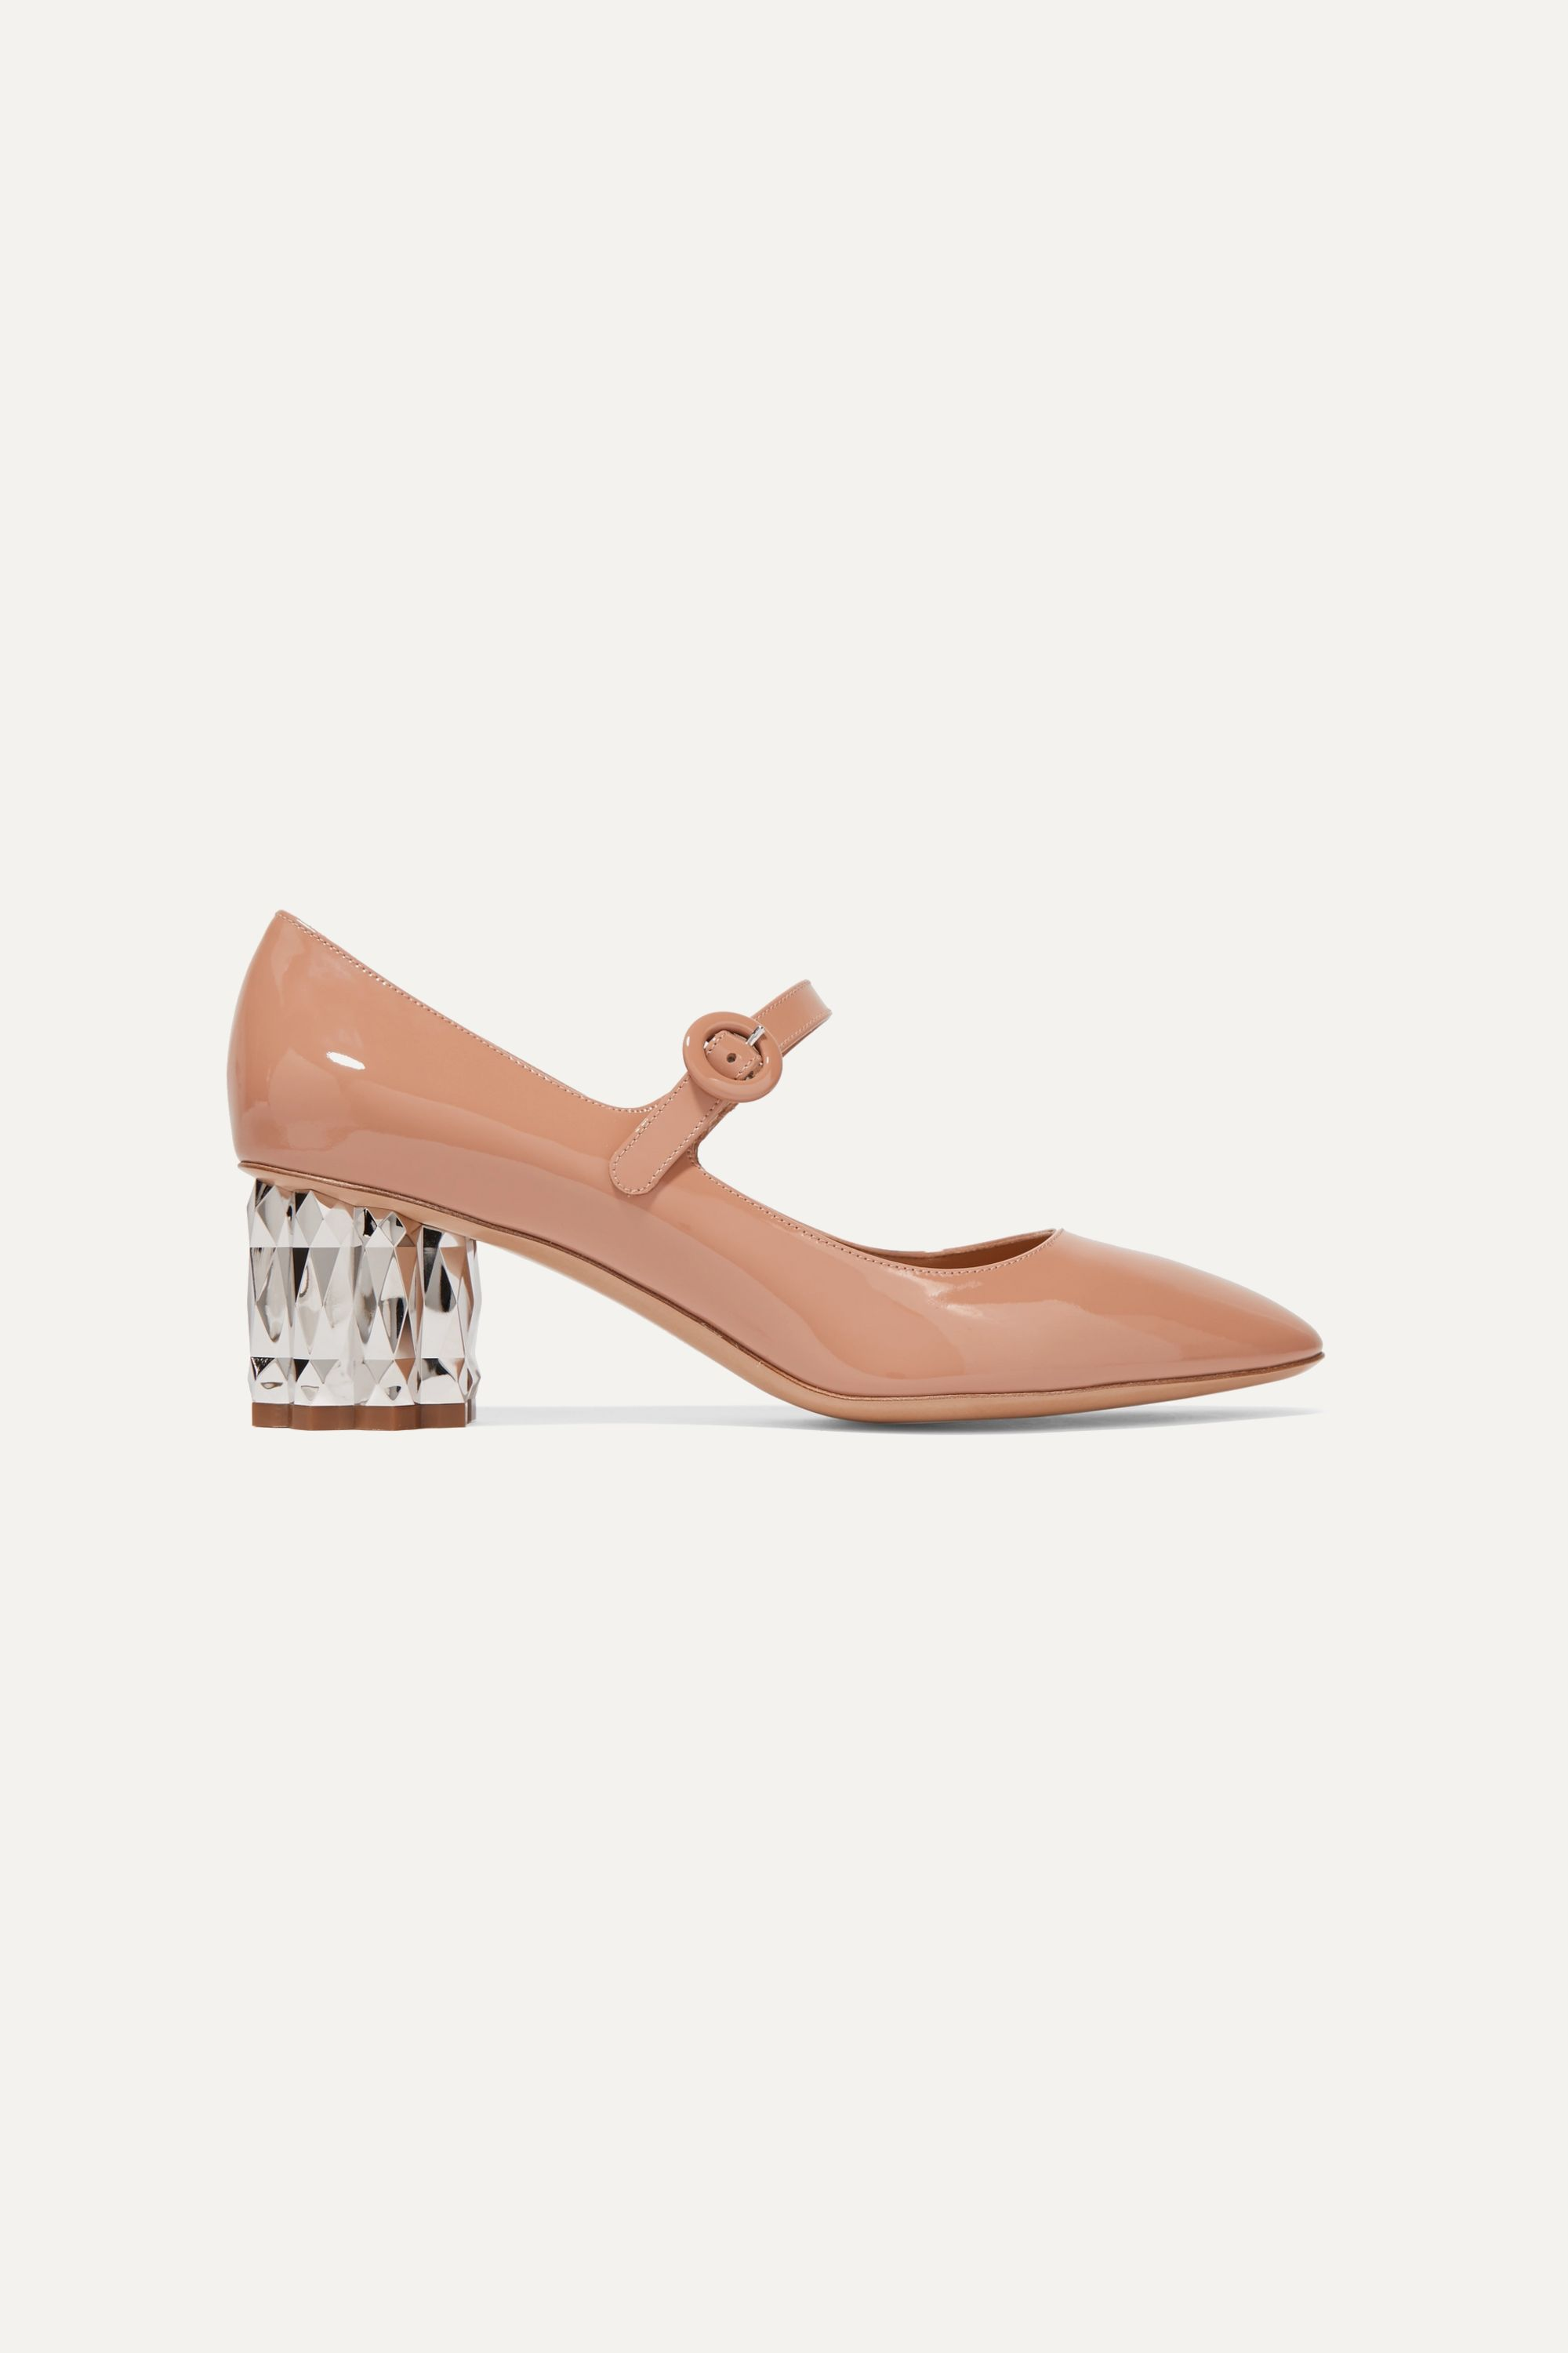 Ortensia patent-leather Mary Jane pumps